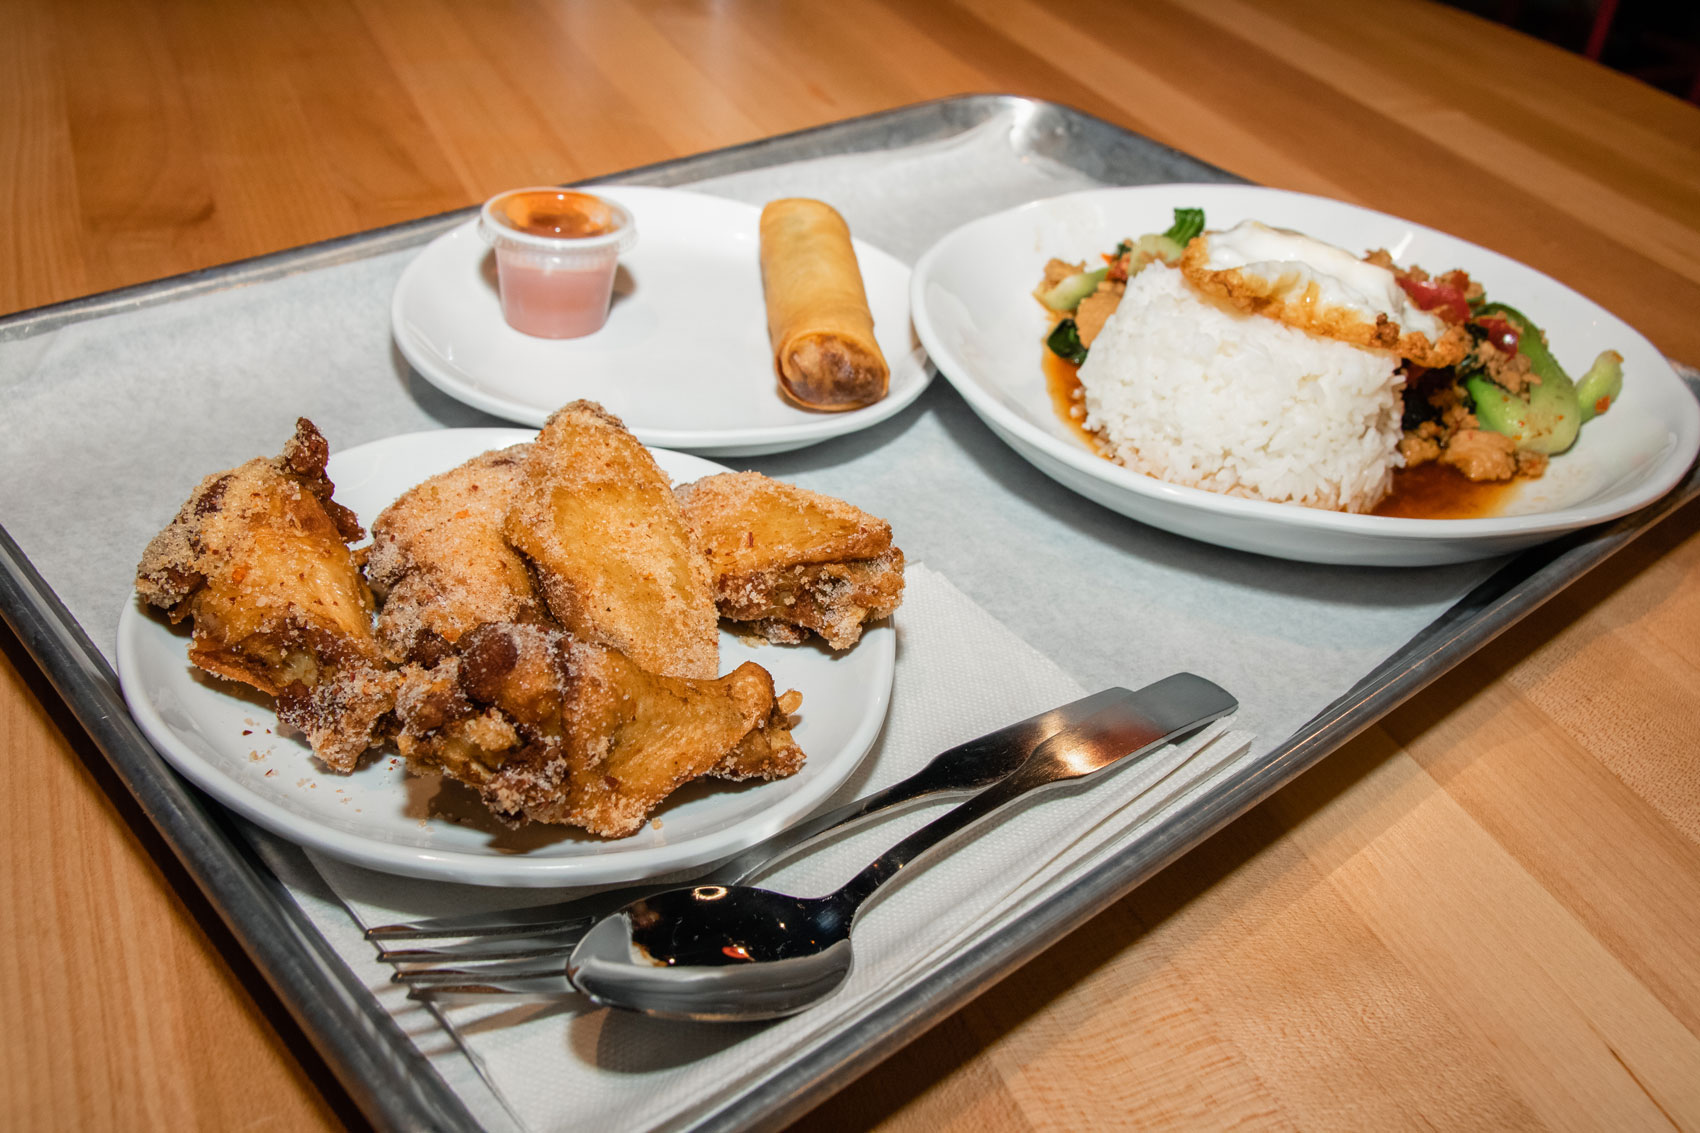 A tray of fried chicken wings and Thai food.